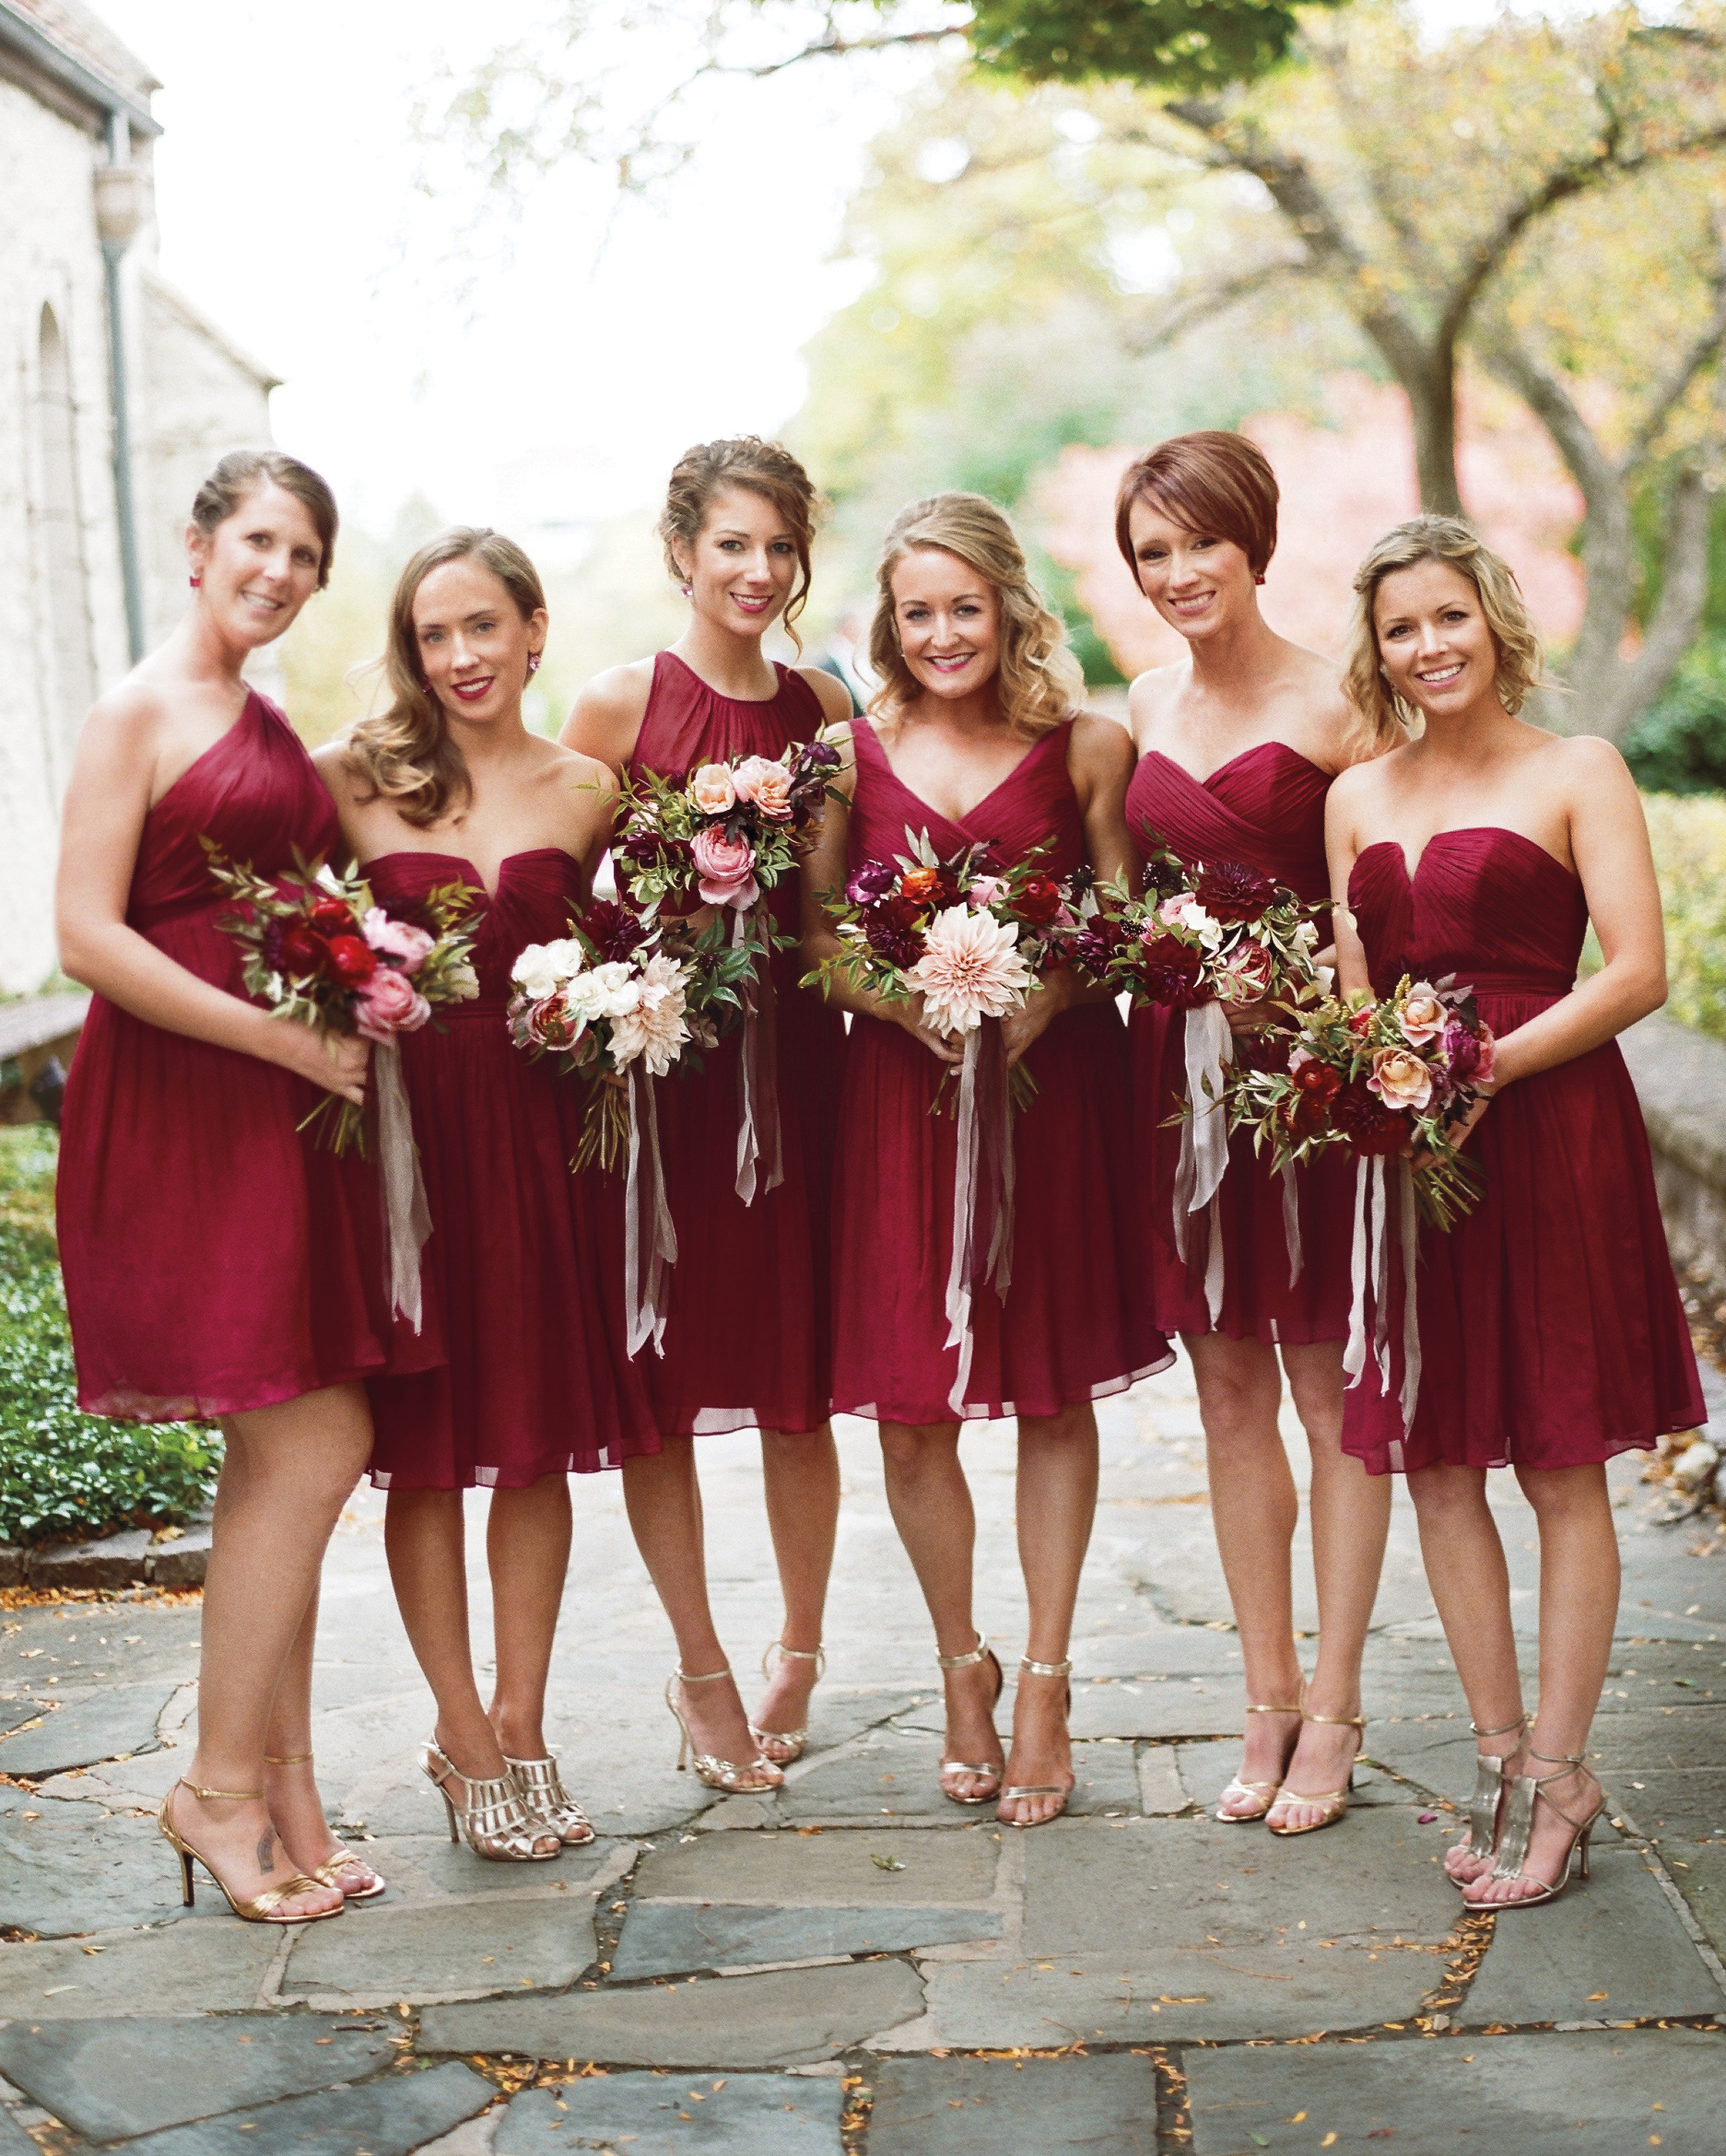 Bold Red Bridesmaids' Dresses Your Entire Wedding Party Will Love